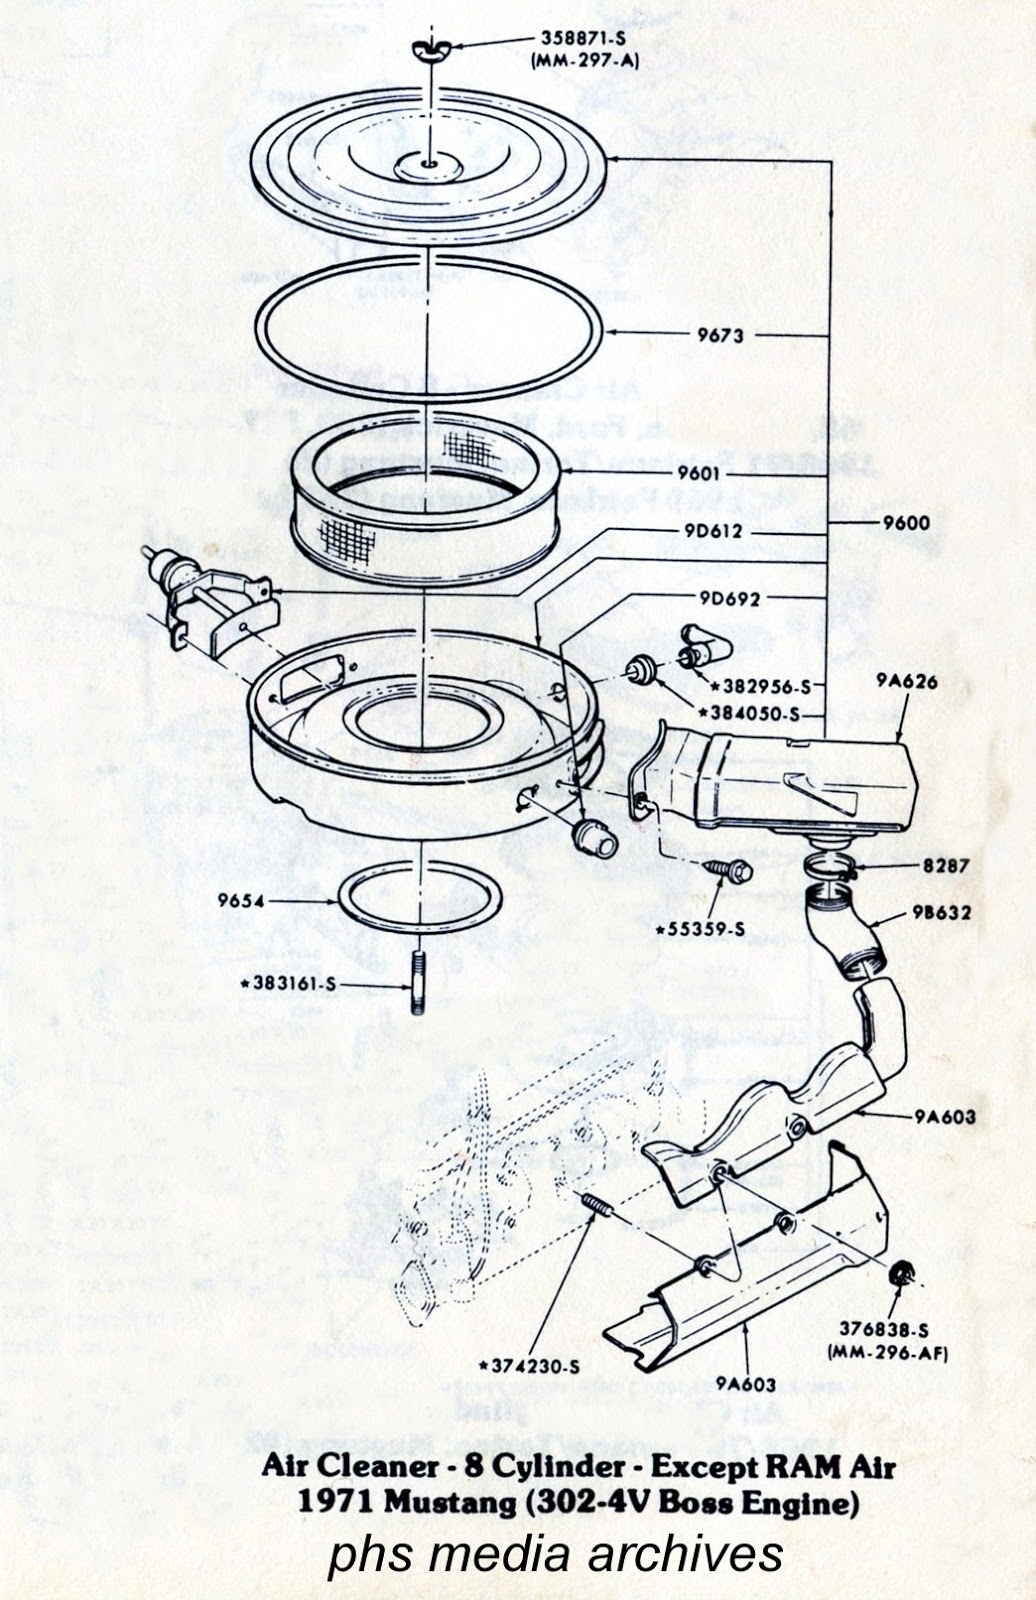 hight resolution of the base six cylinder 250 cid air cleaner unit for the 1971 model specific model year is not shown we have included an engine diagram which has the air